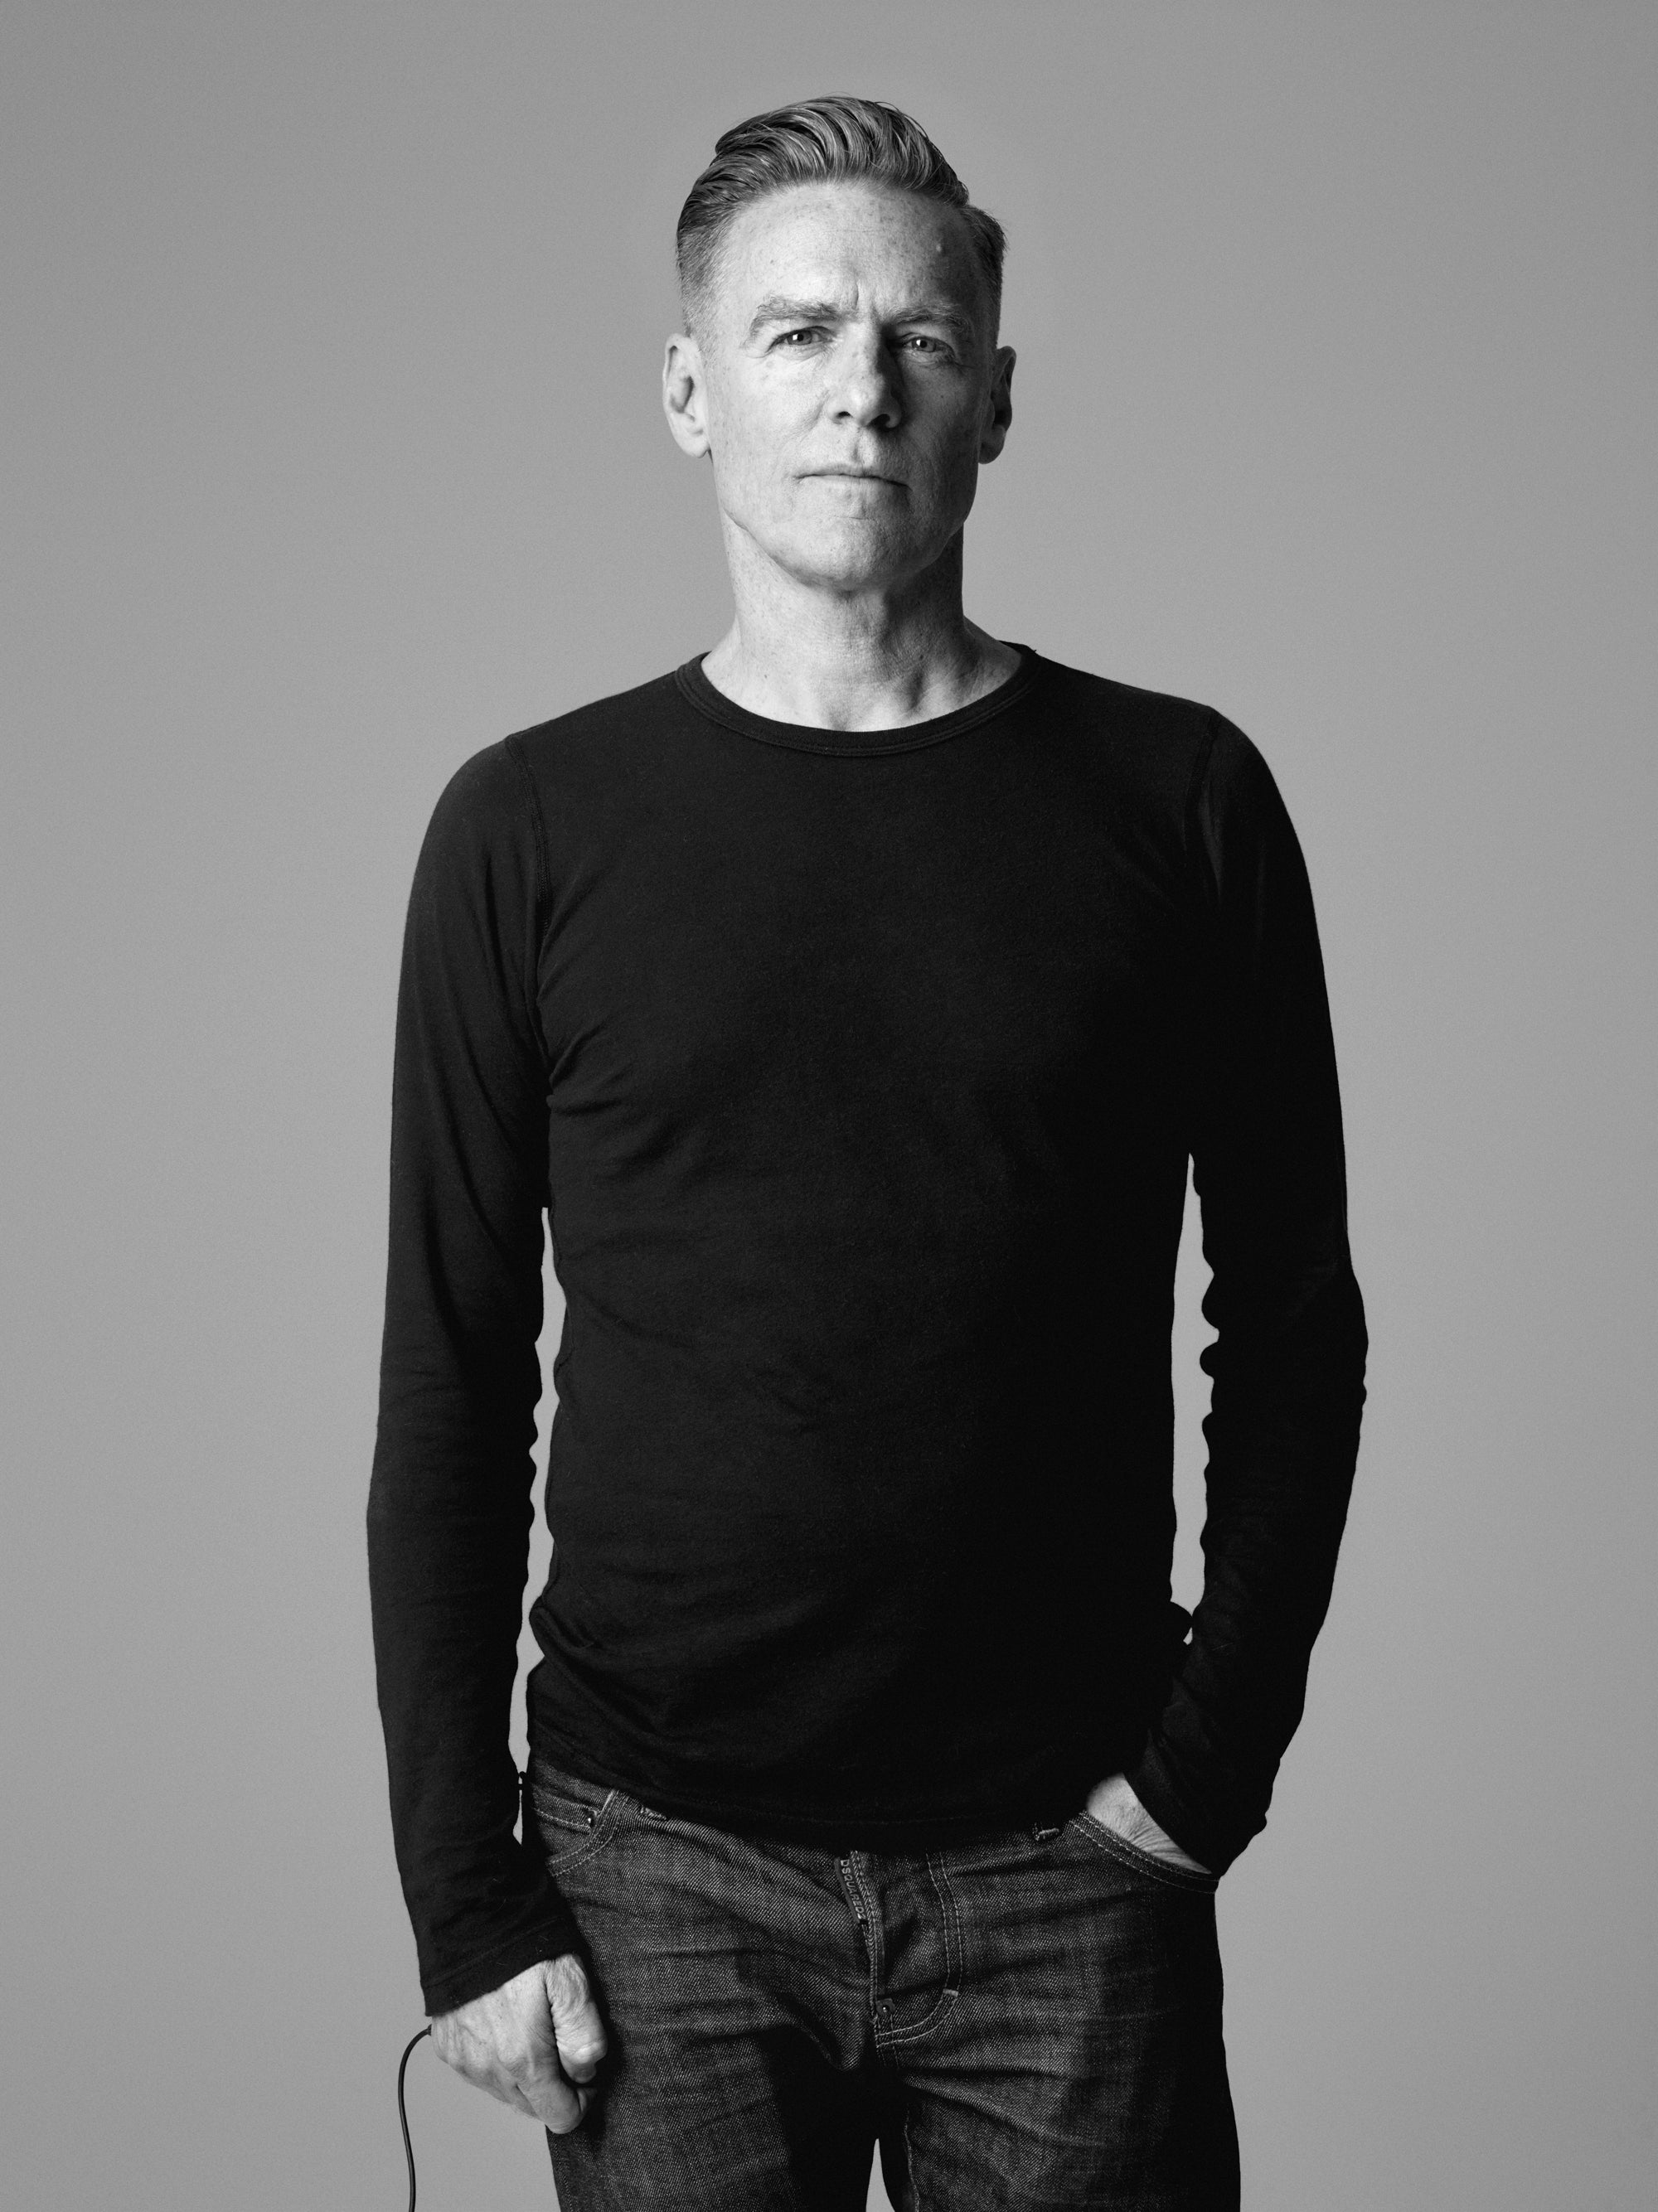 Bryan Adams All or Nothing - 91.9 WFPK Independent